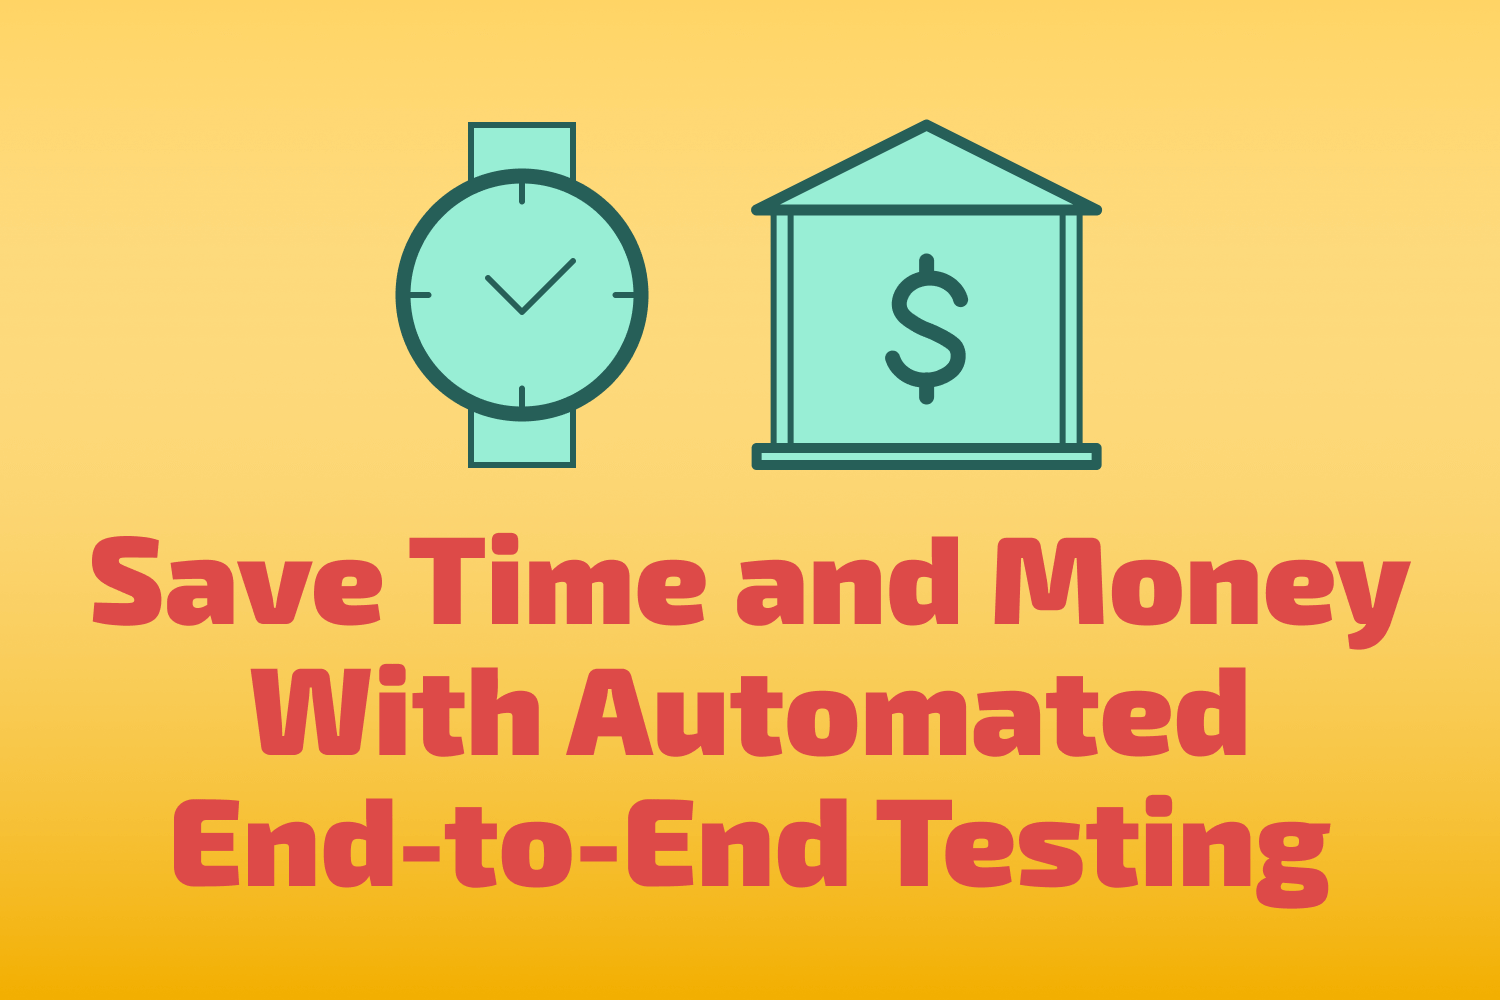 Save Time and Money With Automated End-to-End Testing